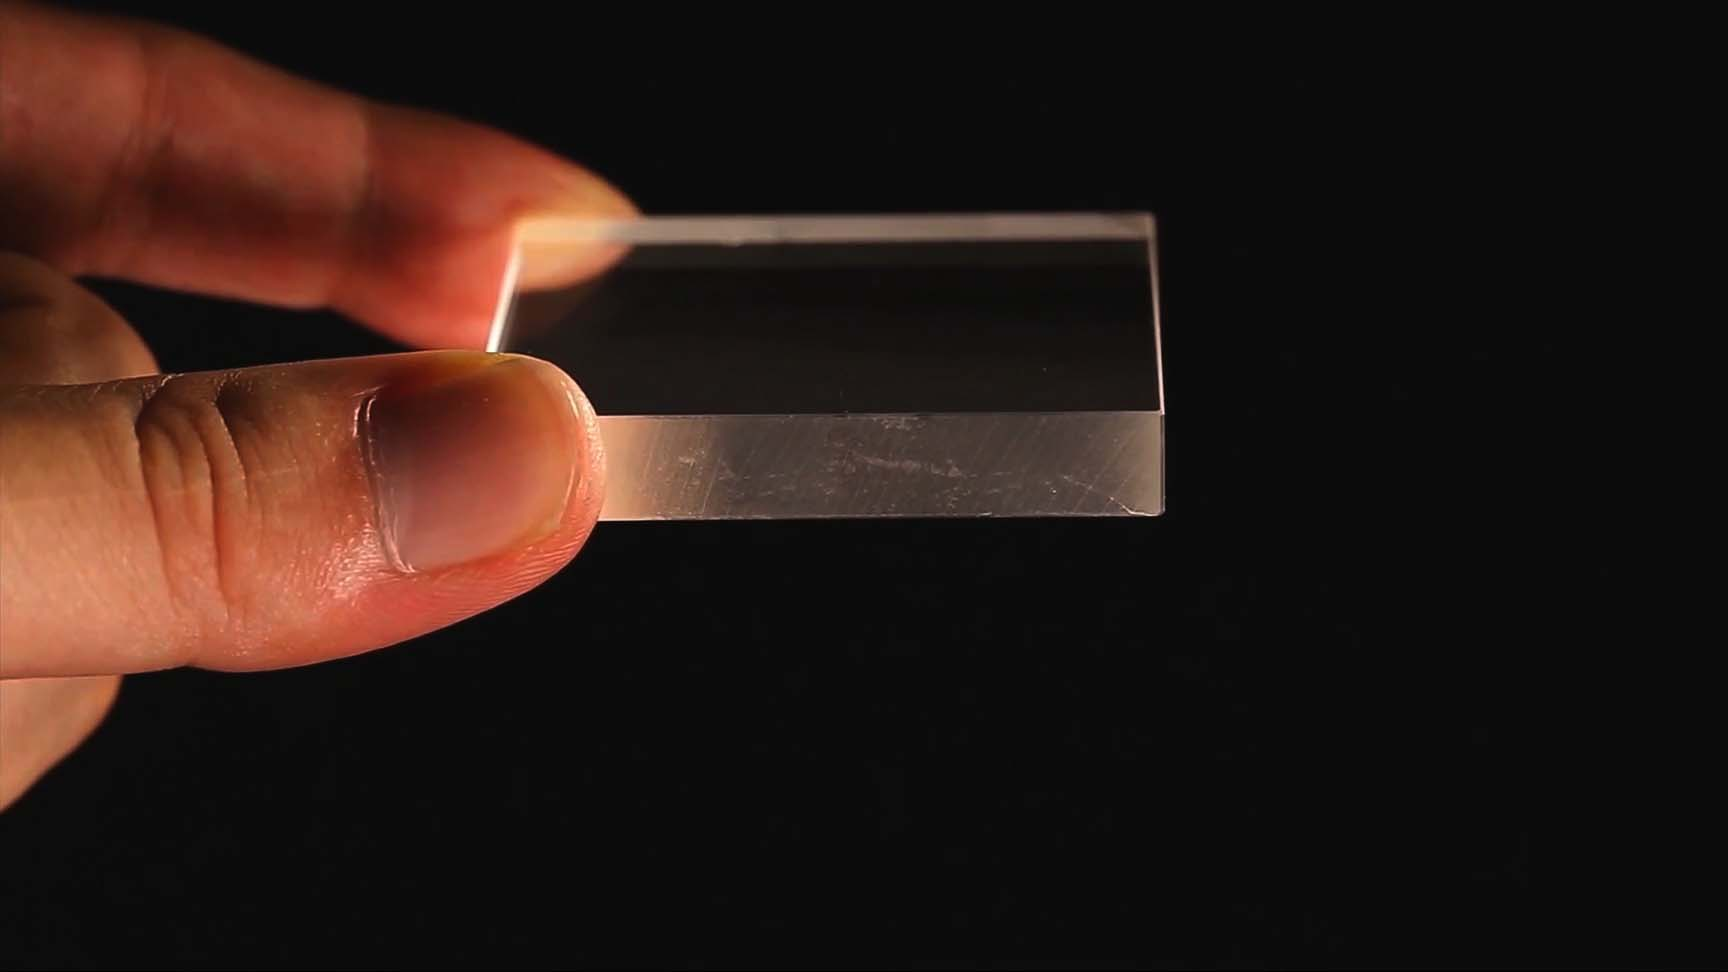 Hitachi's fused silica recording technology